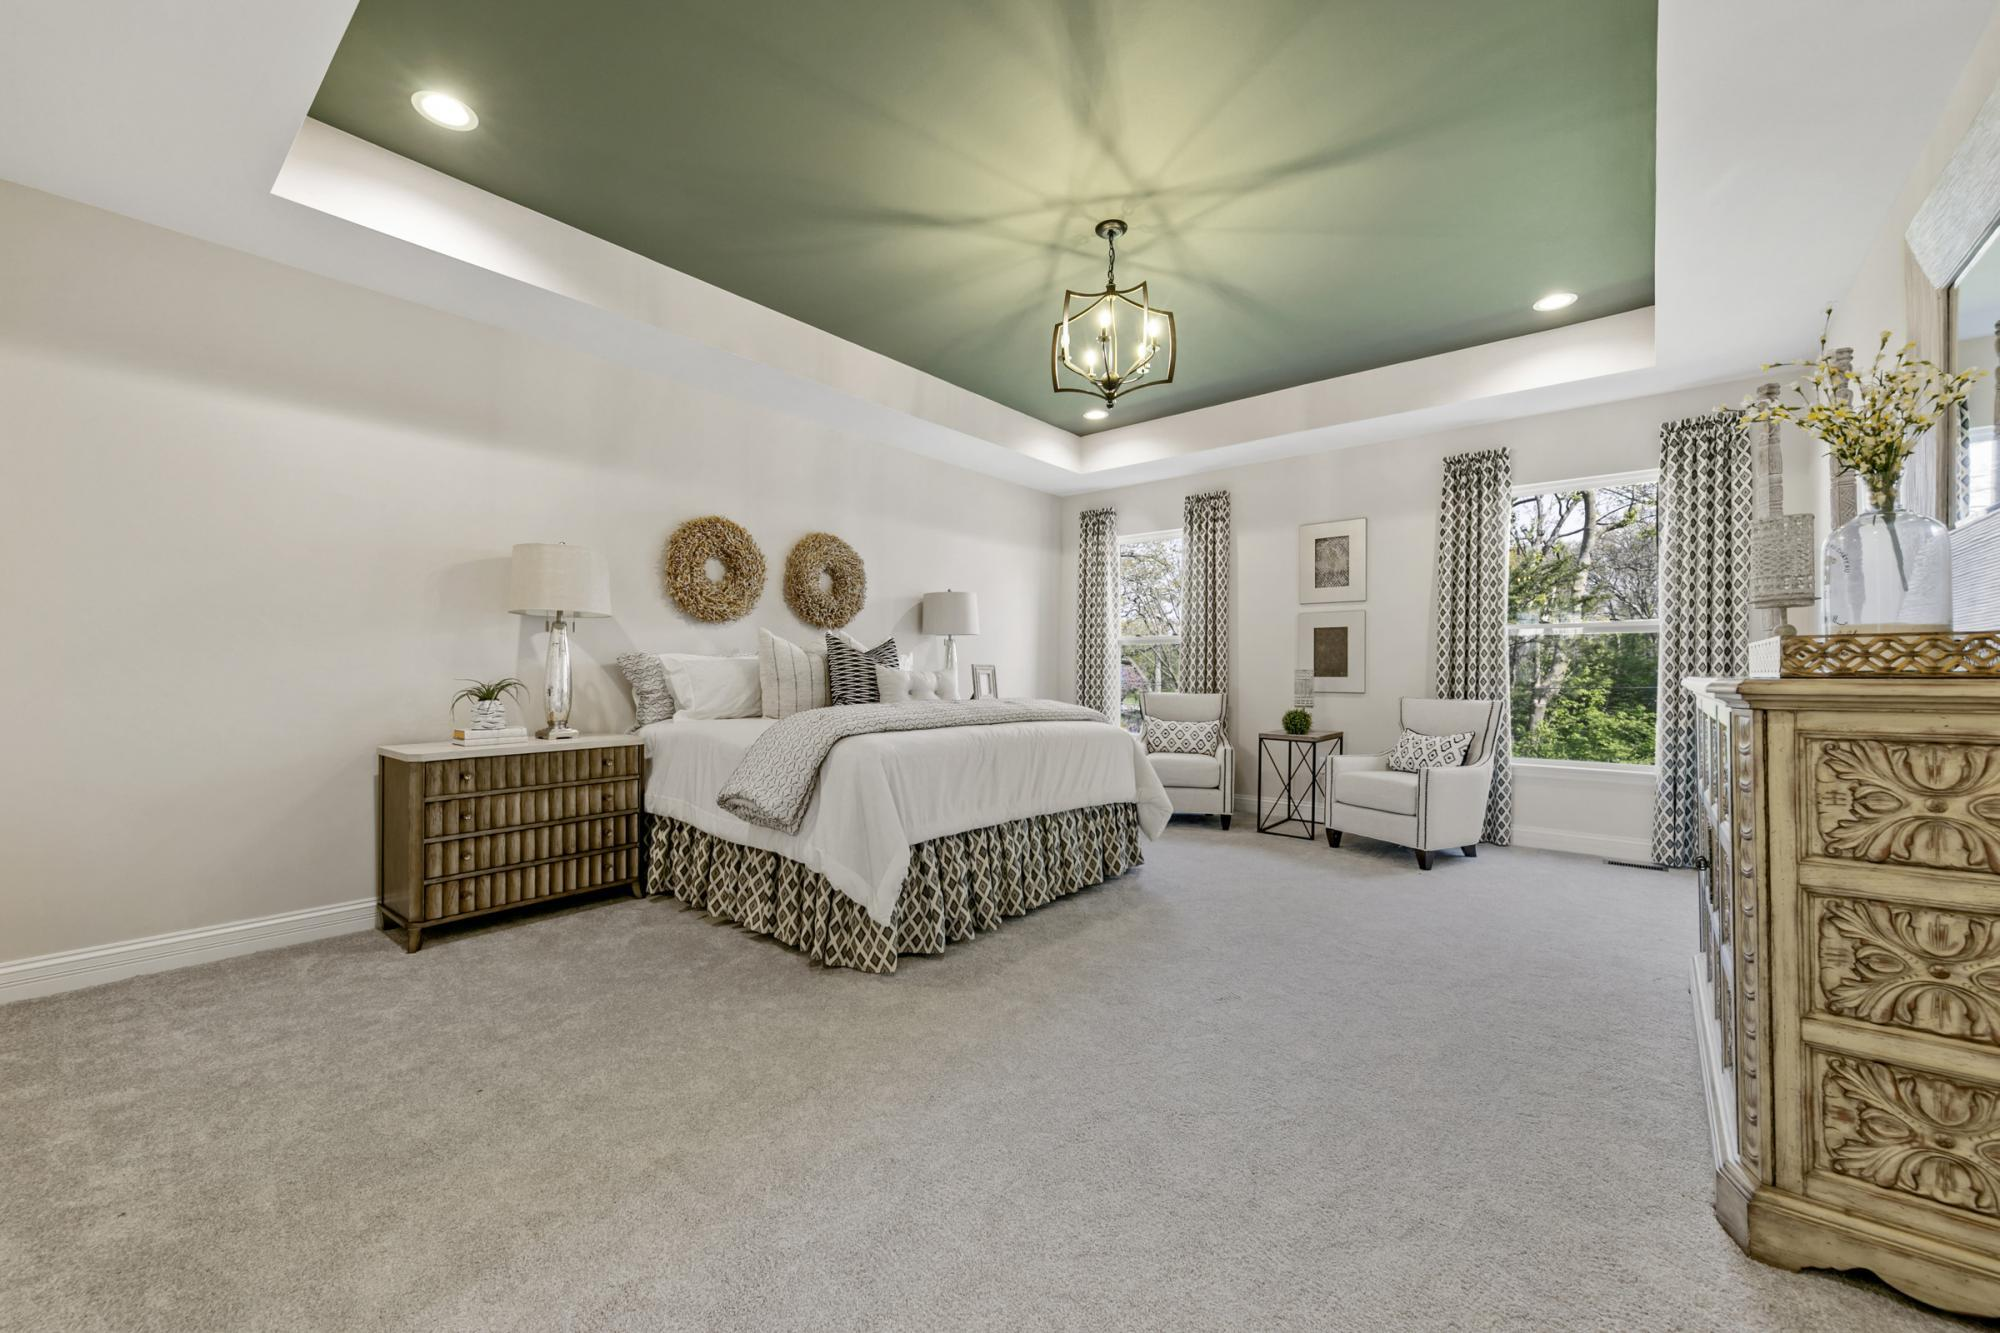 Bedroom featured in the Muirfield By McKelvey Homes in St. Louis, MO